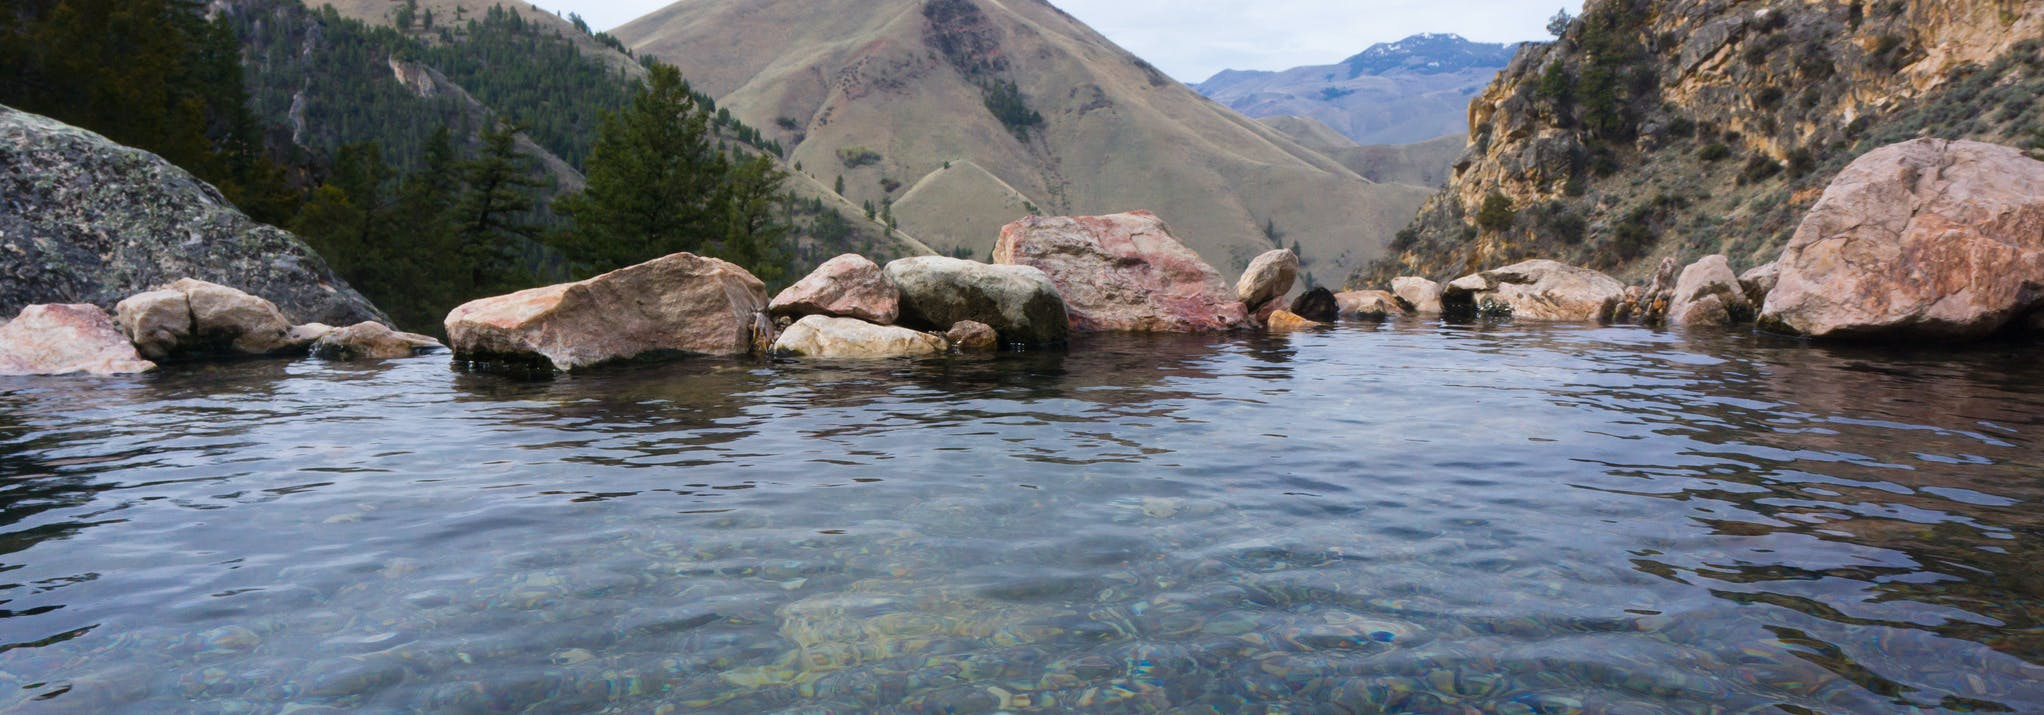 a hot spring overlooking a scenic landscape